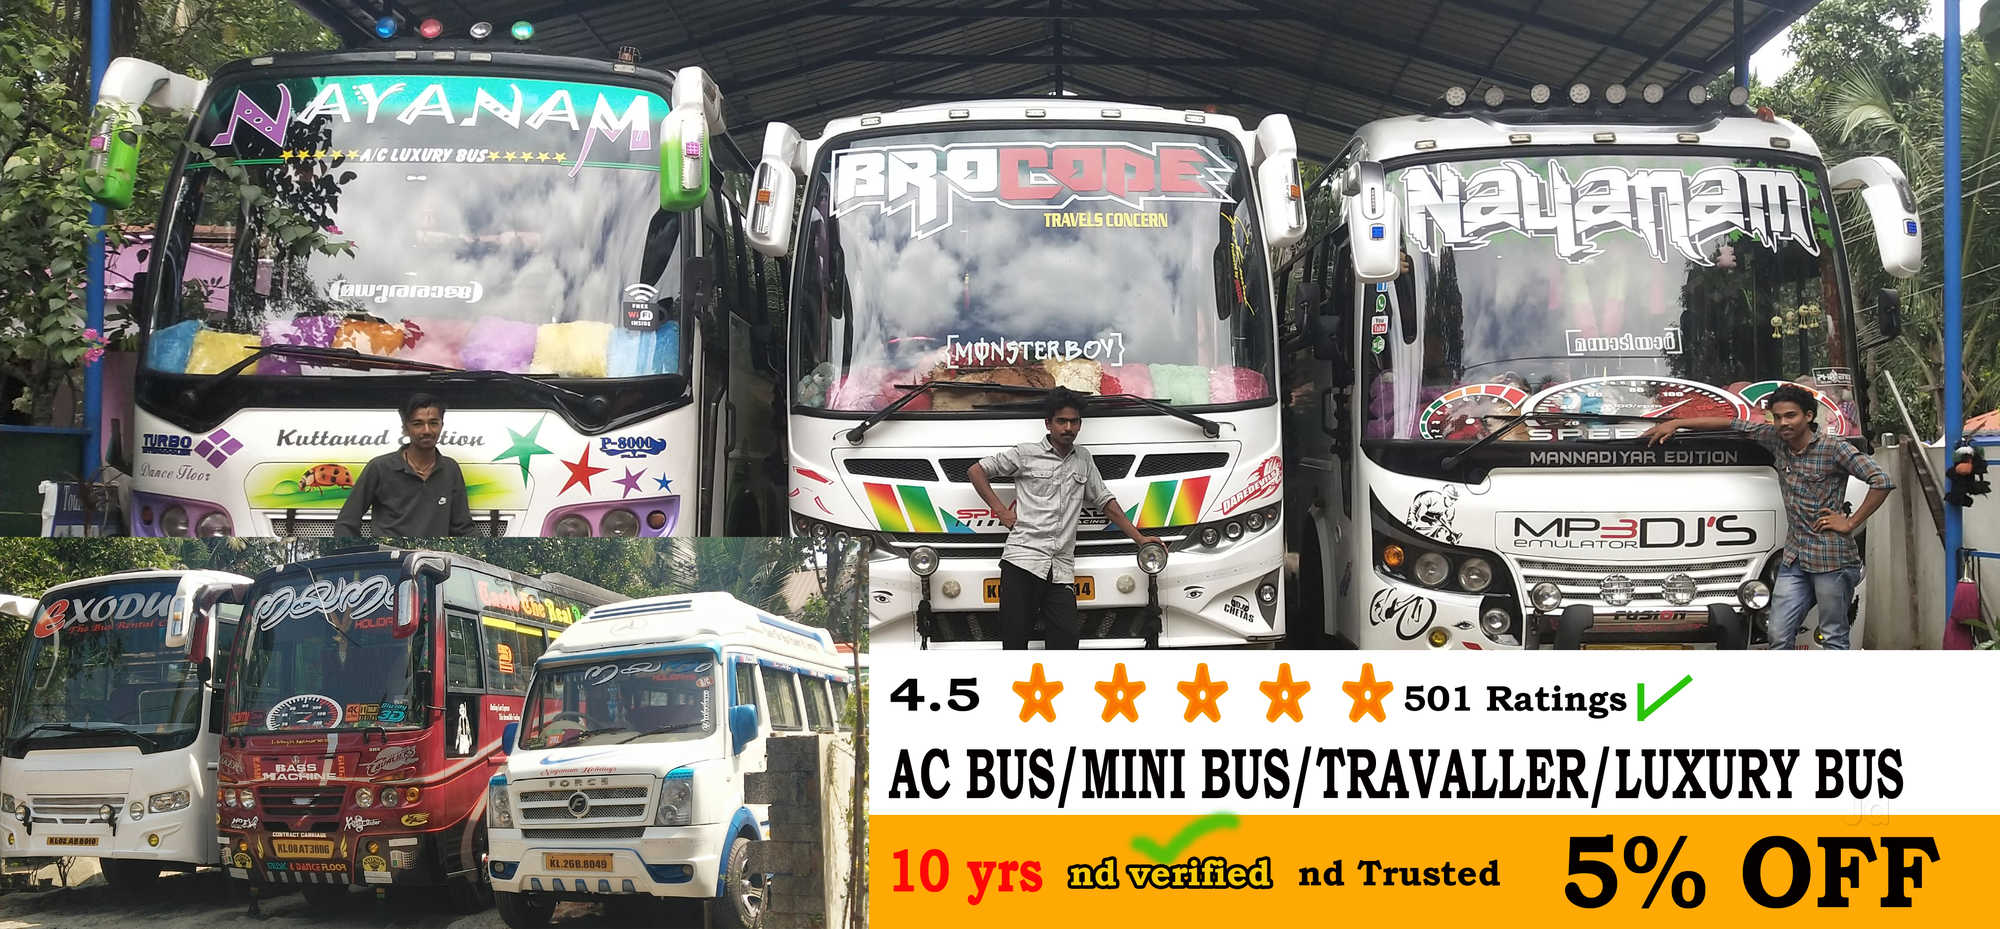 Top 50 Bus Services in Alappuzha - Best Charter Bus Services - Justdial